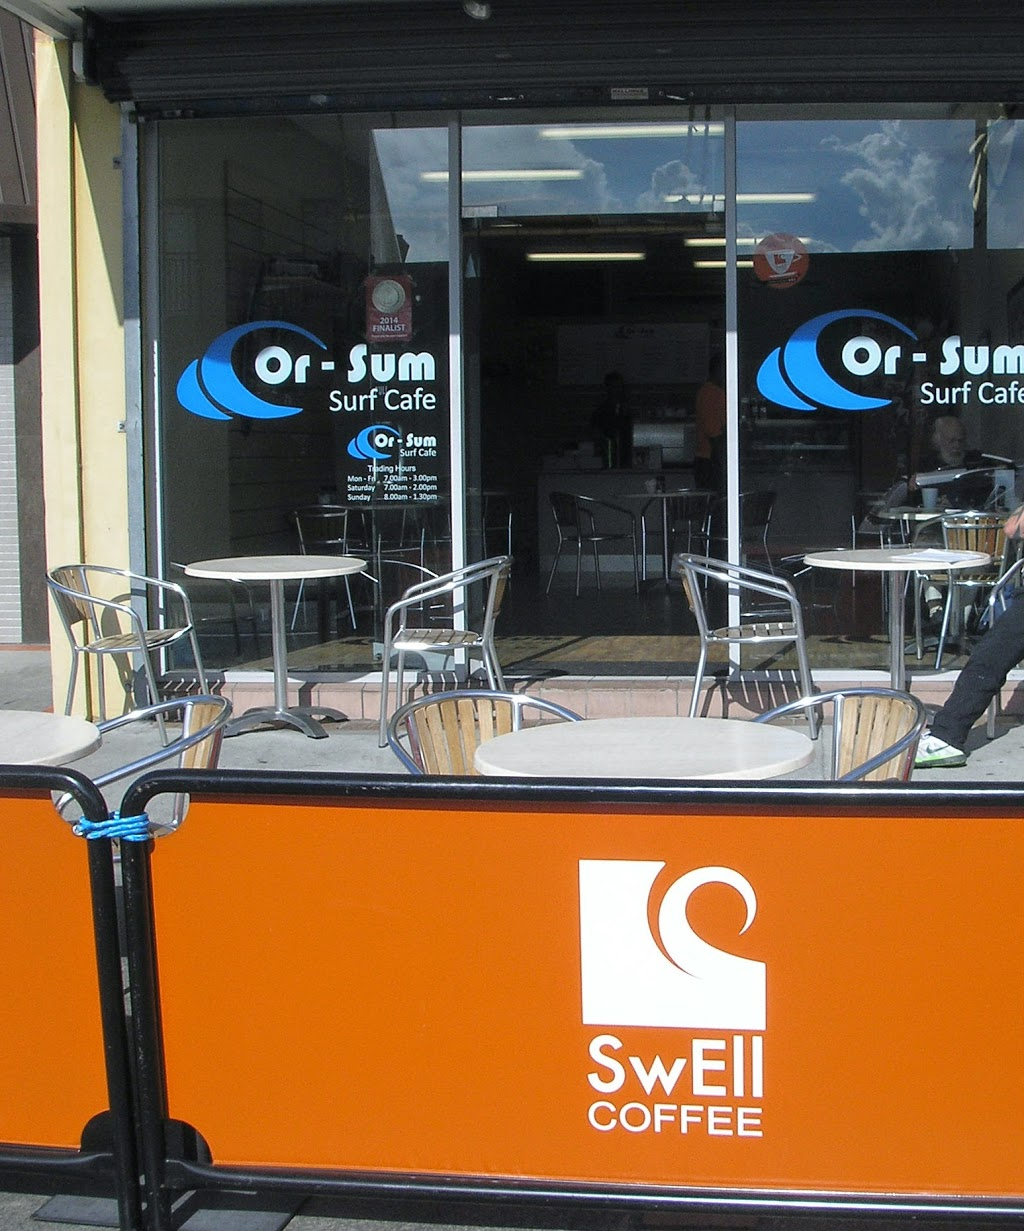 Or-Sum Surf Cafe | cafe | 10 George St, Warilla NSW 2528, Australia | 0242962244 OR +61 2 4296 2244